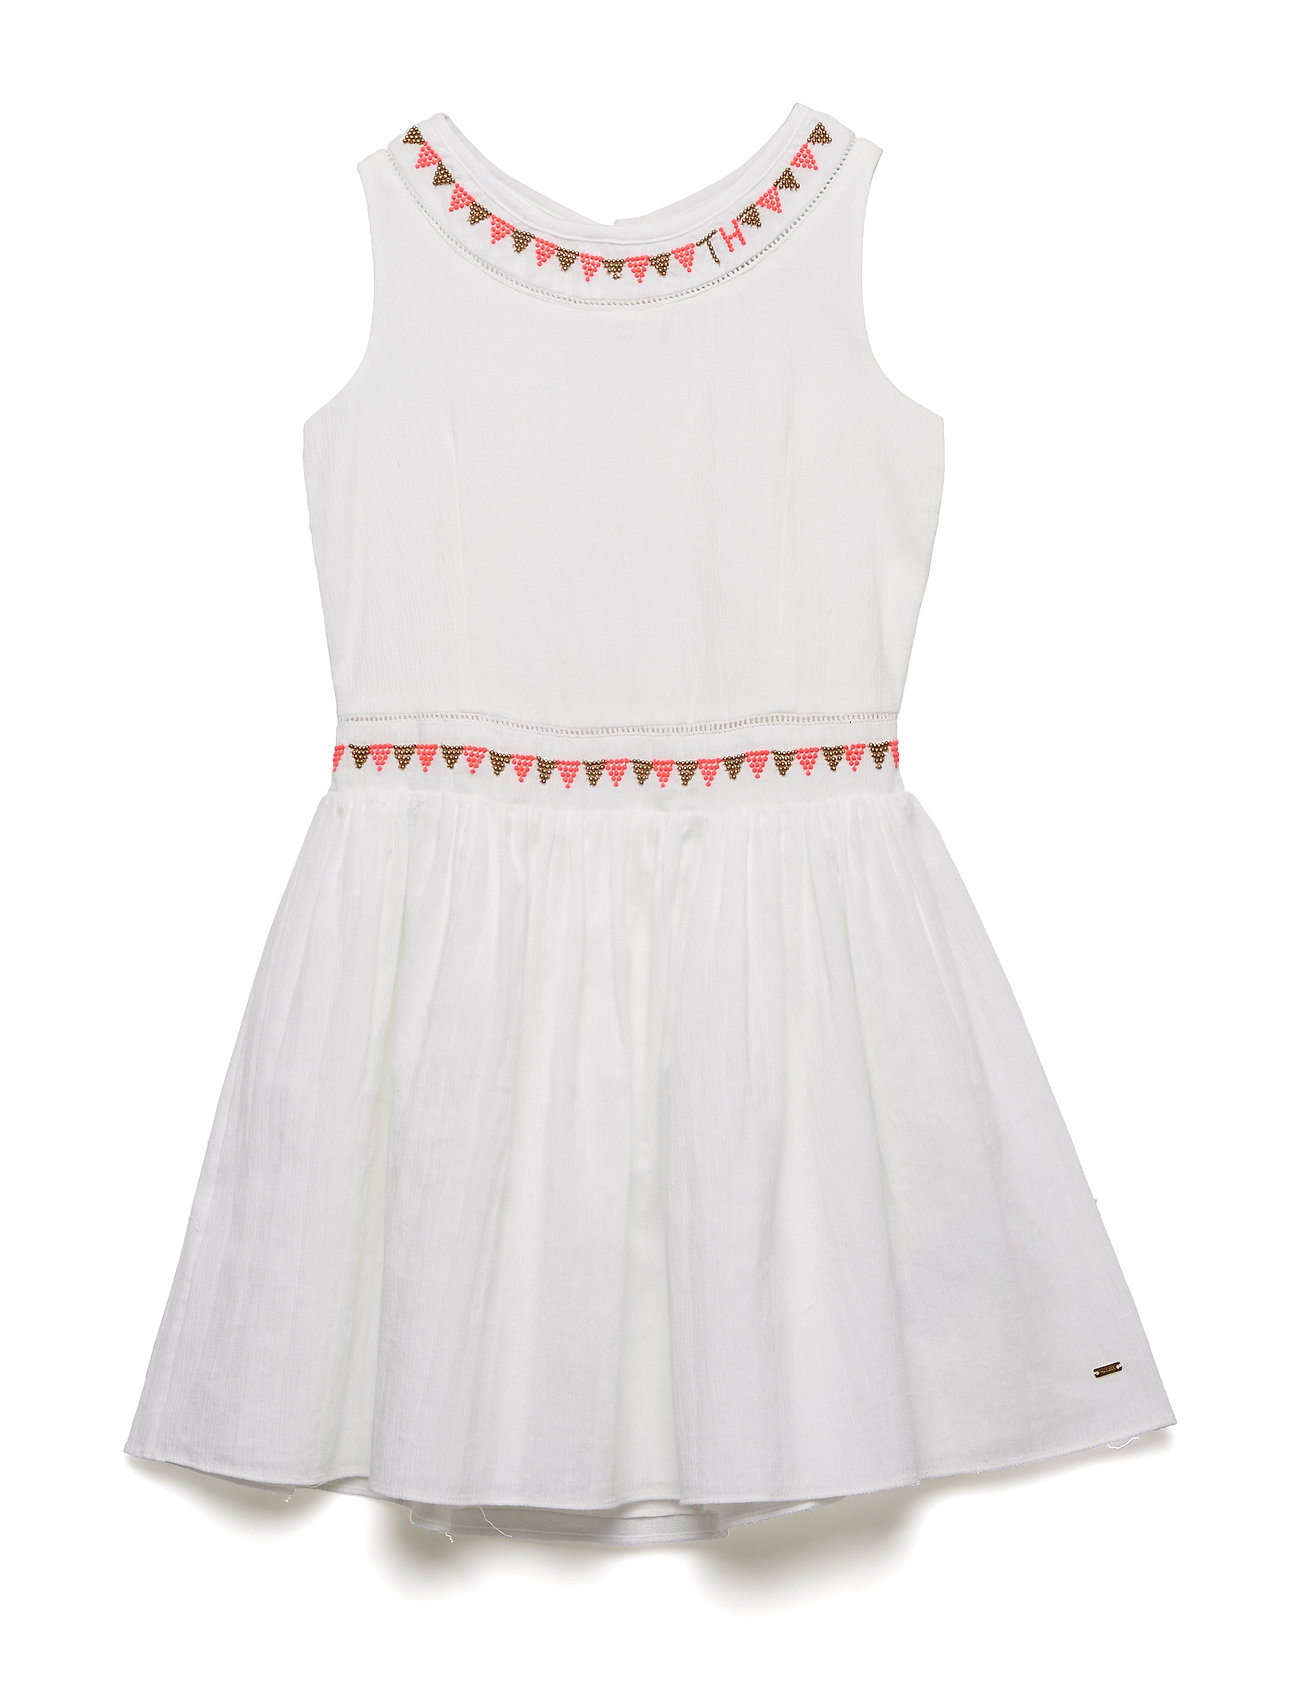 Tommy Hilfiger ENDEARING SUN DRESS - BRIGHT WHITE